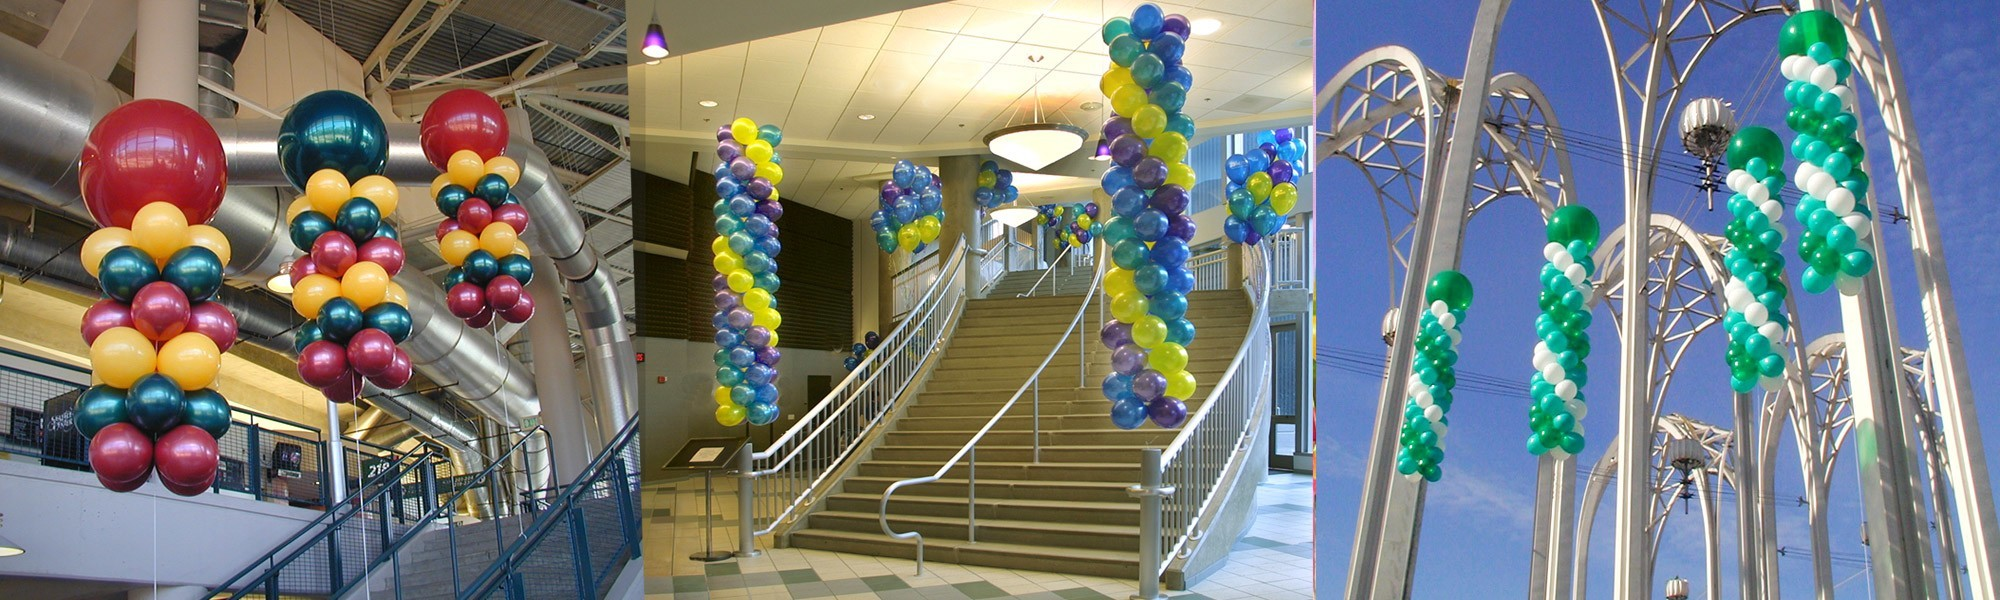 Columns - Aerial - Professionally Arranged and Hand Delivered by BalloonPlanet.com